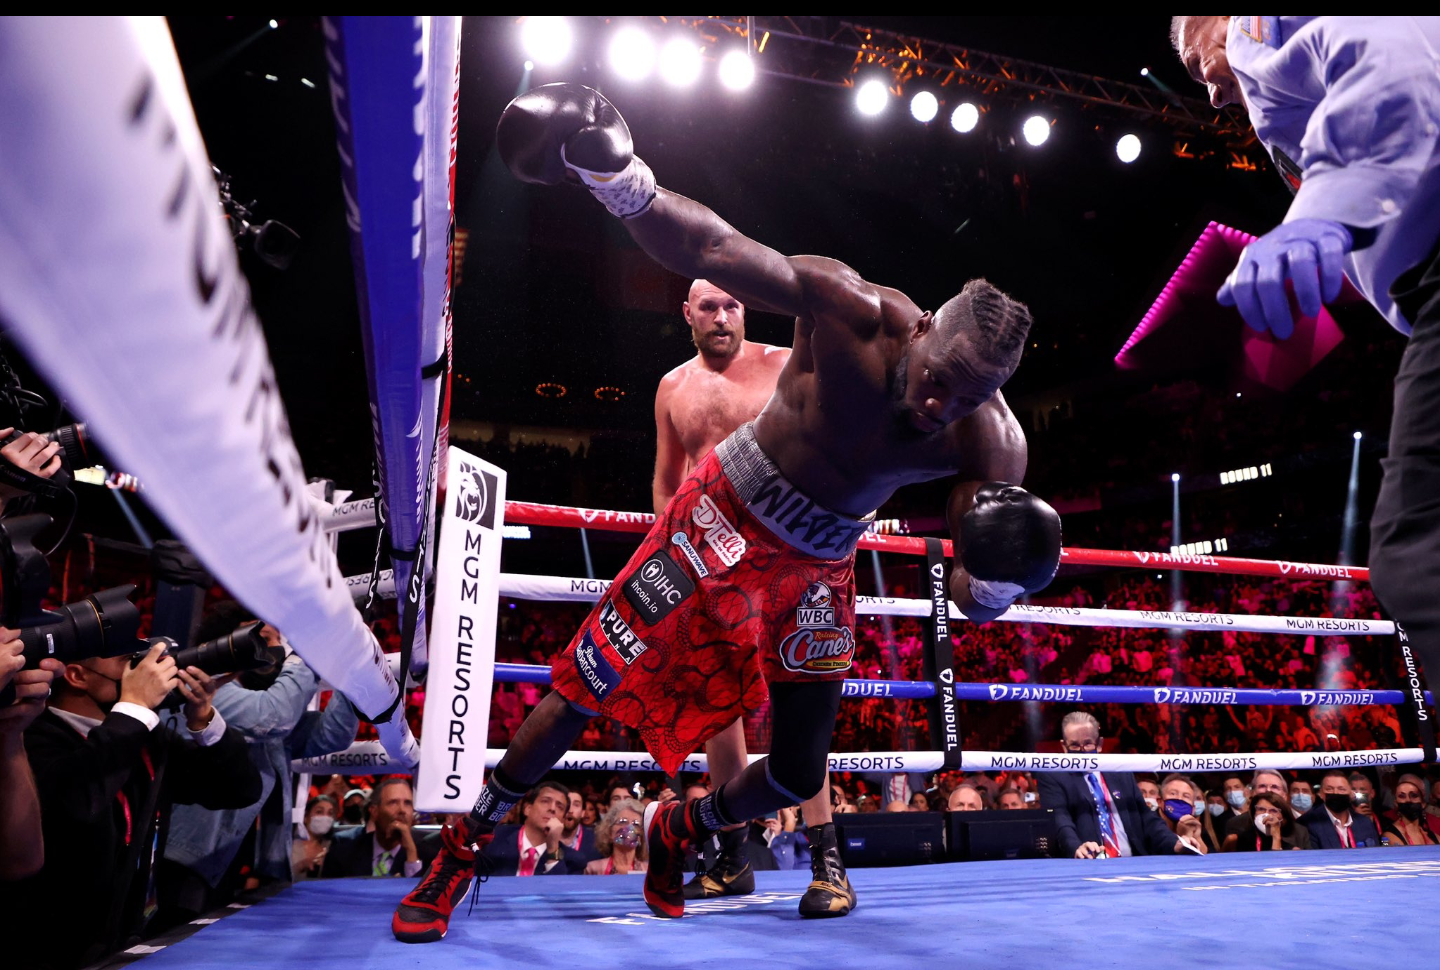 """Tyson Fury: """"I Hit Him [Deontay Wilder] With A Crunching Right Hook Upside The Temple, Shots Like That End Careers"""""""